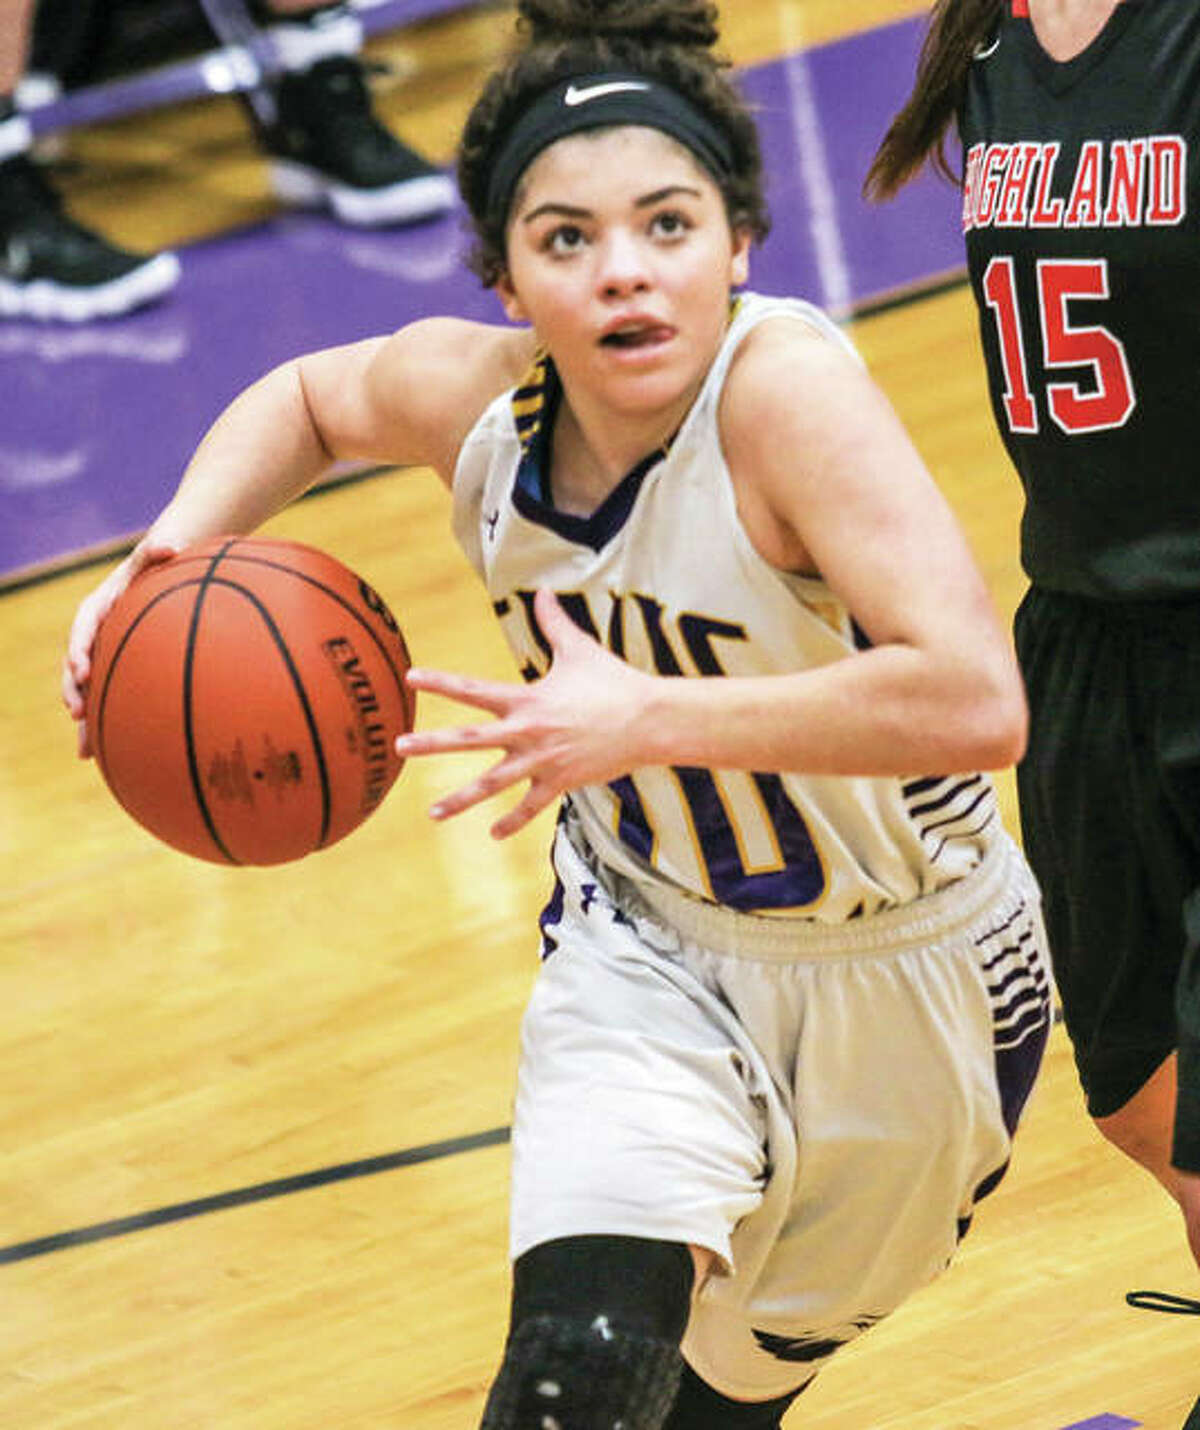 Civic Memorial sophomore Kourtland Tyus scored nine points and turned in a big floor game Thursday night in the Eagles' Mississippi Valley Conference win over the Knights in Troy. Tyus is shown in action Jan. 24 in a win over Highland in Bethalto.